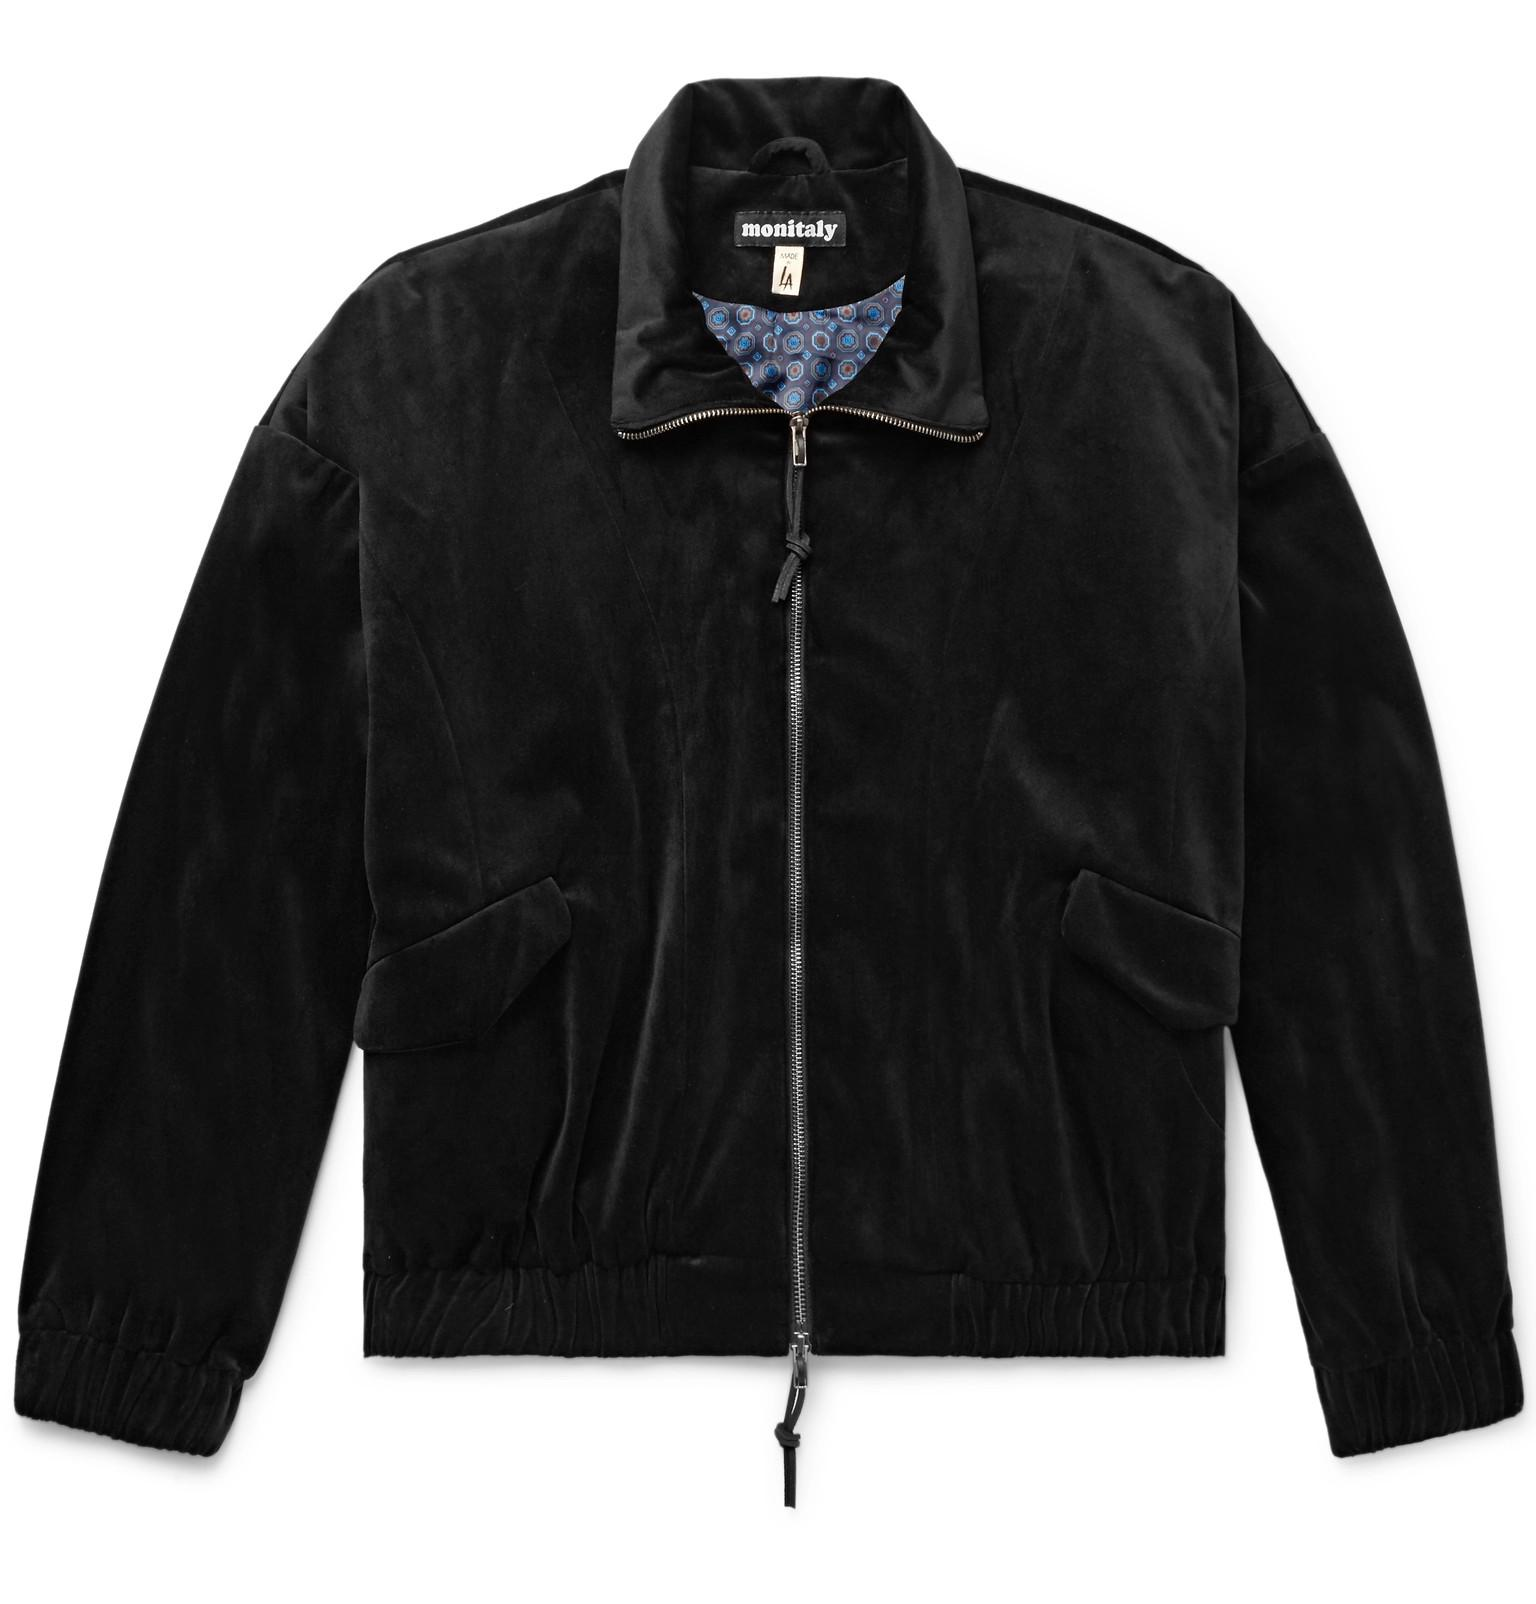 Monitaly Velvet Old Men For Jacket Lyst Black View Fullscreen Blouson Dog rBUrxn